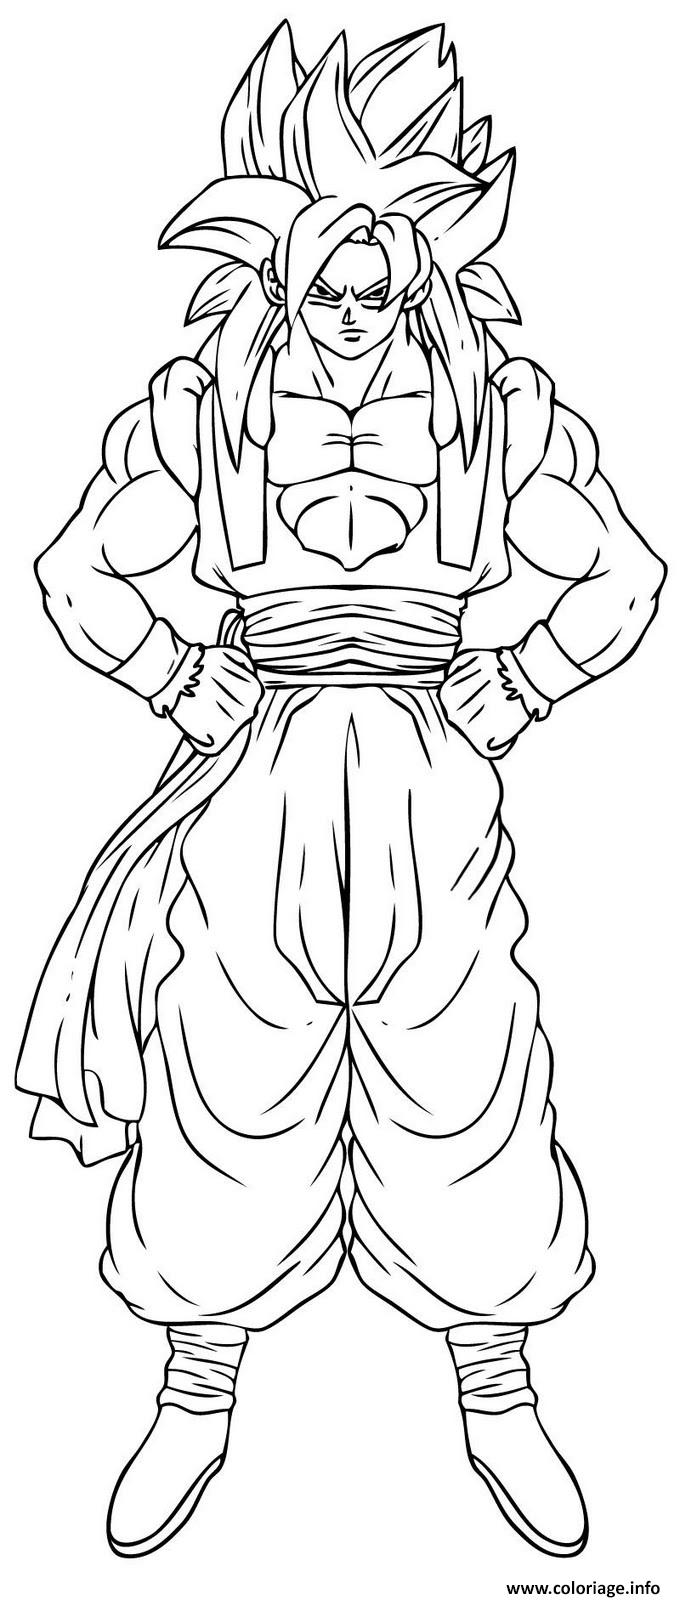 Coloriage Dragon Ball Z 143 Dessin à Imprimer